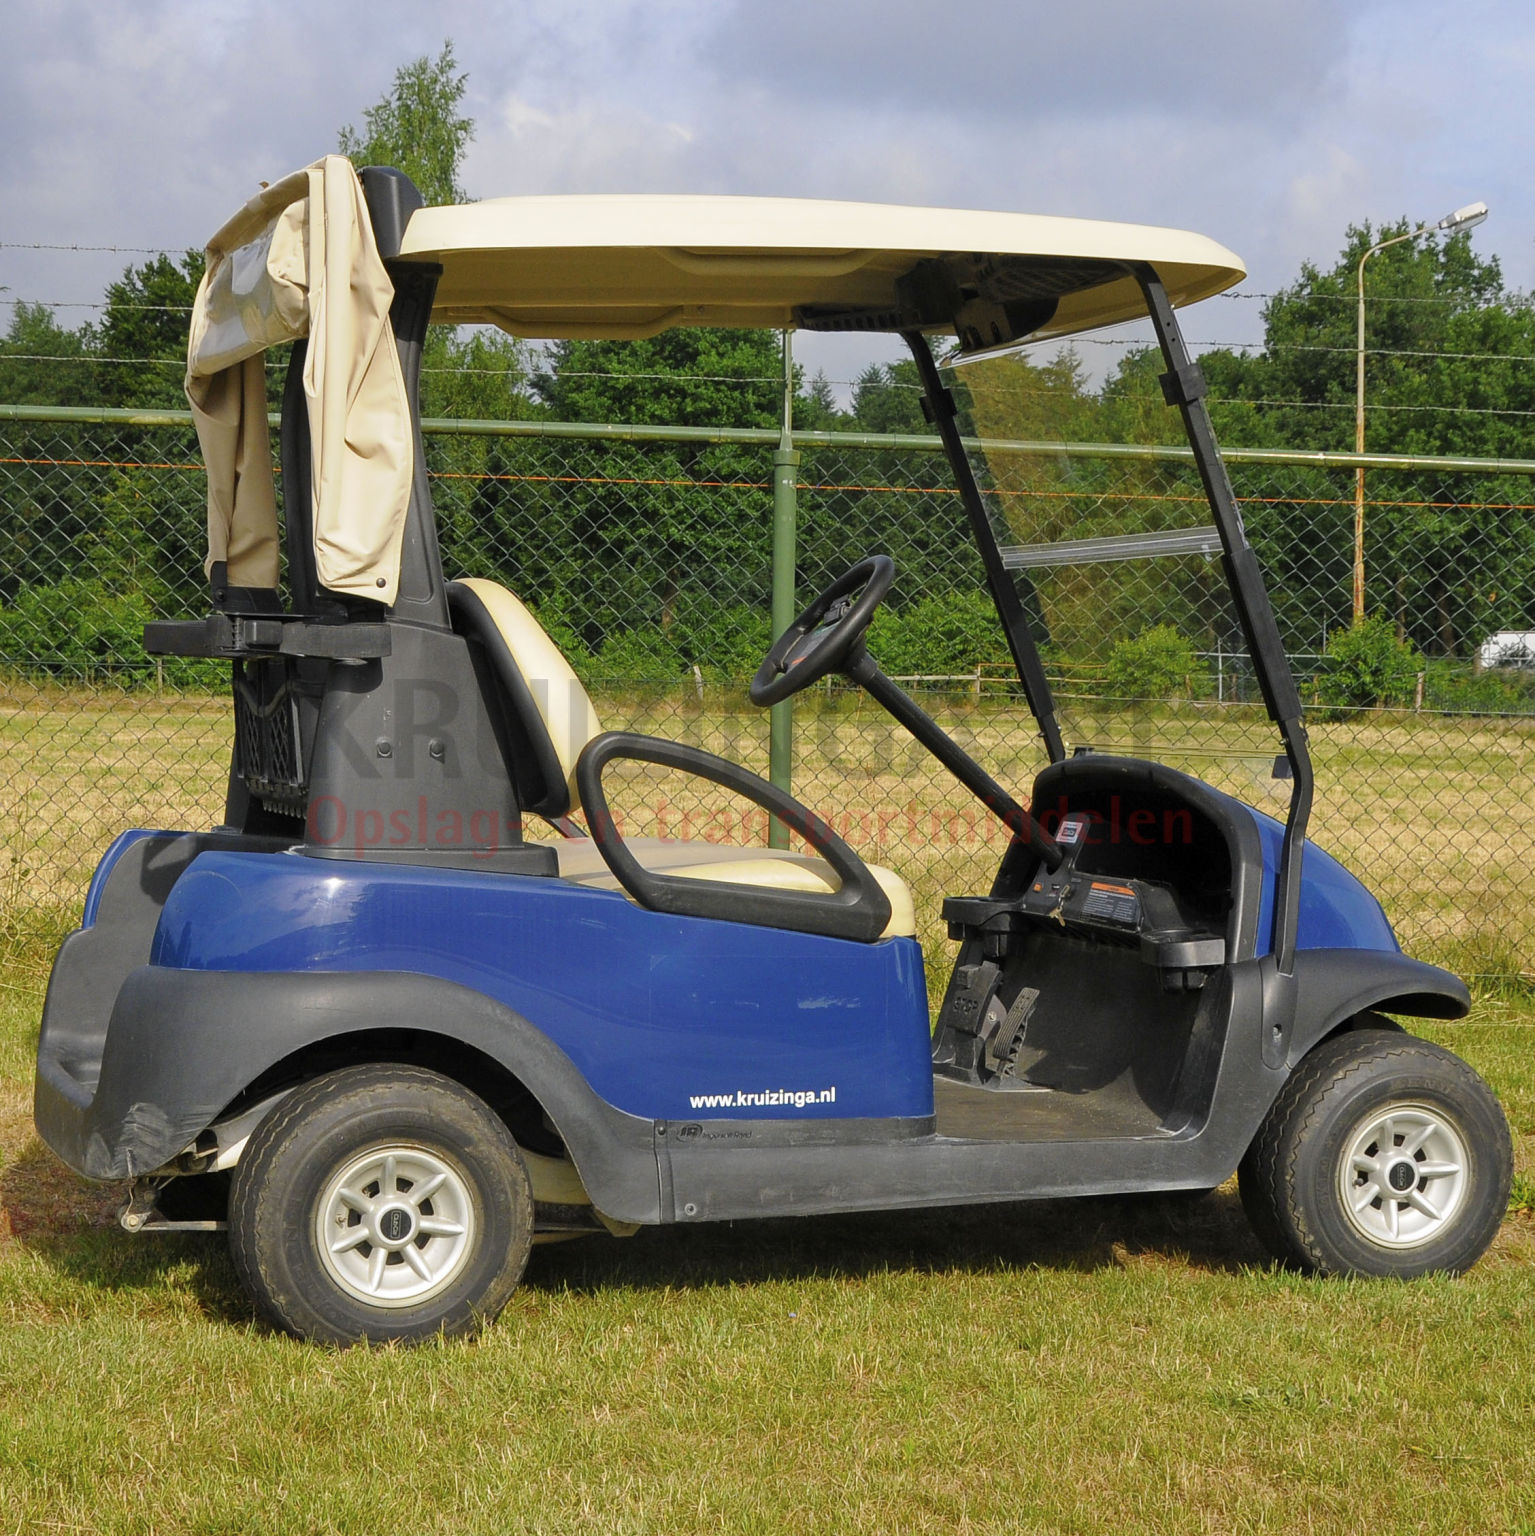 golf cart club car precedent pour 2 personnes lectrique occasion. Black Bedroom Furniture Sets. Home Design Ideas